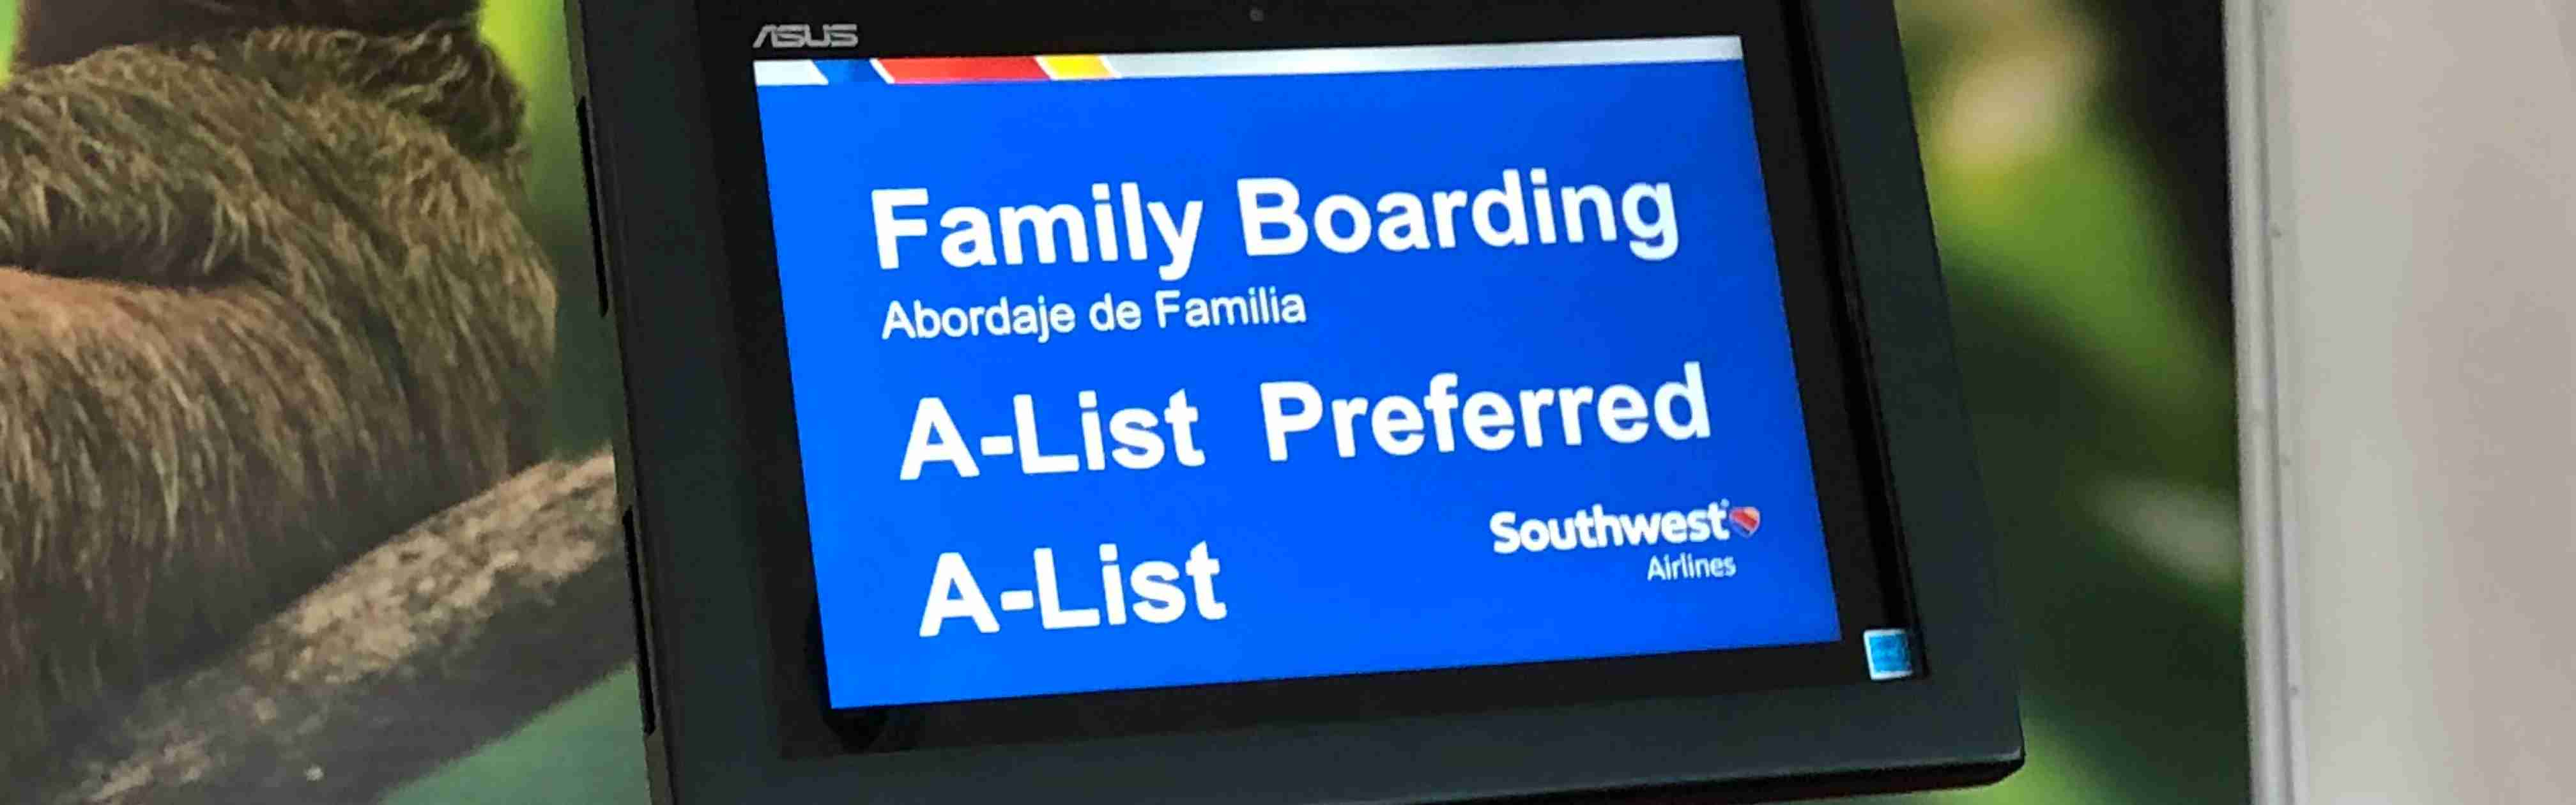 Southwest Family Boarding